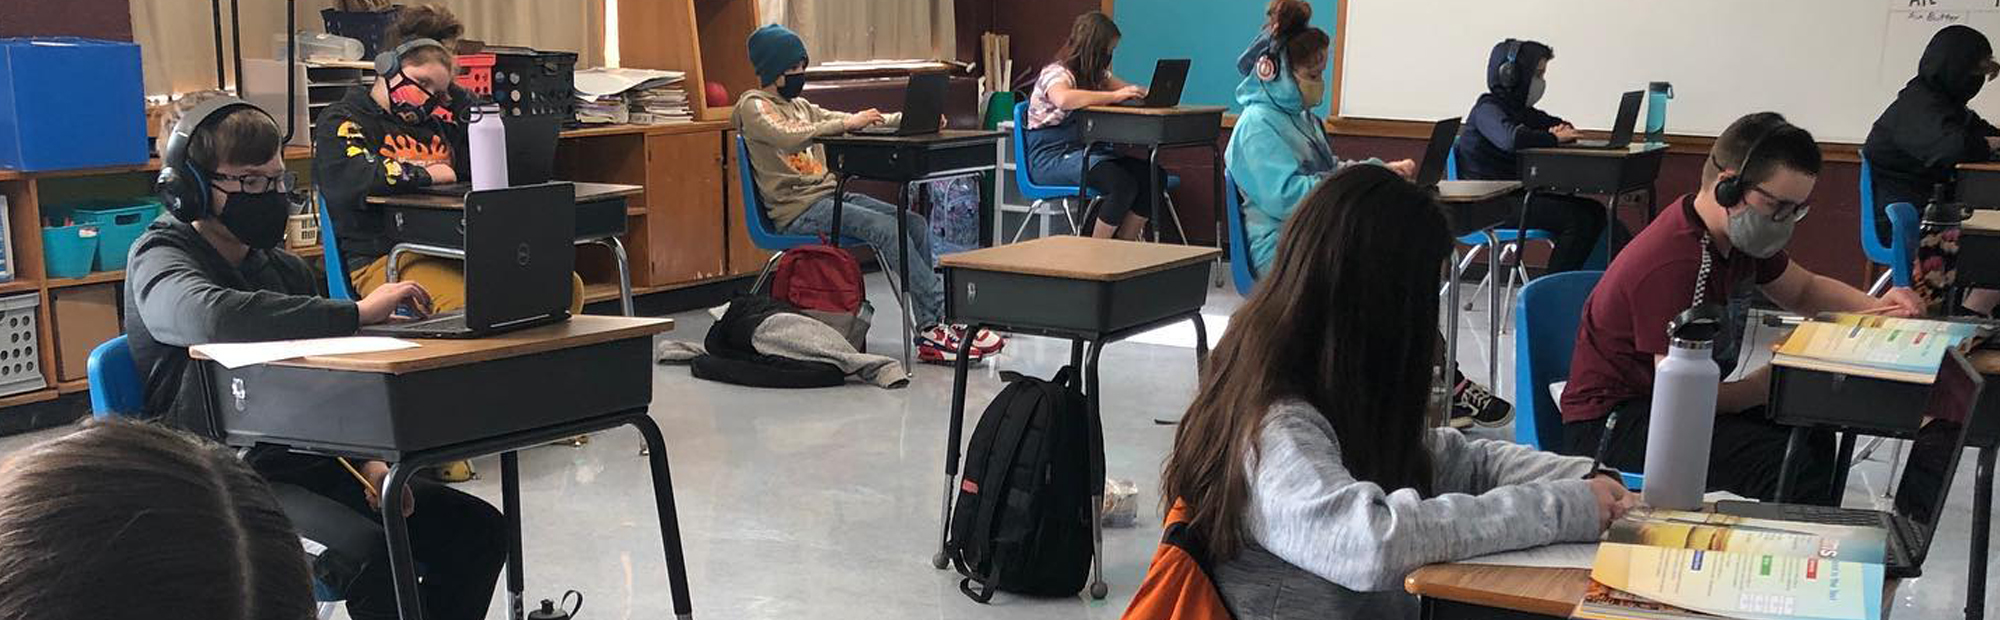 students sitting at their desks